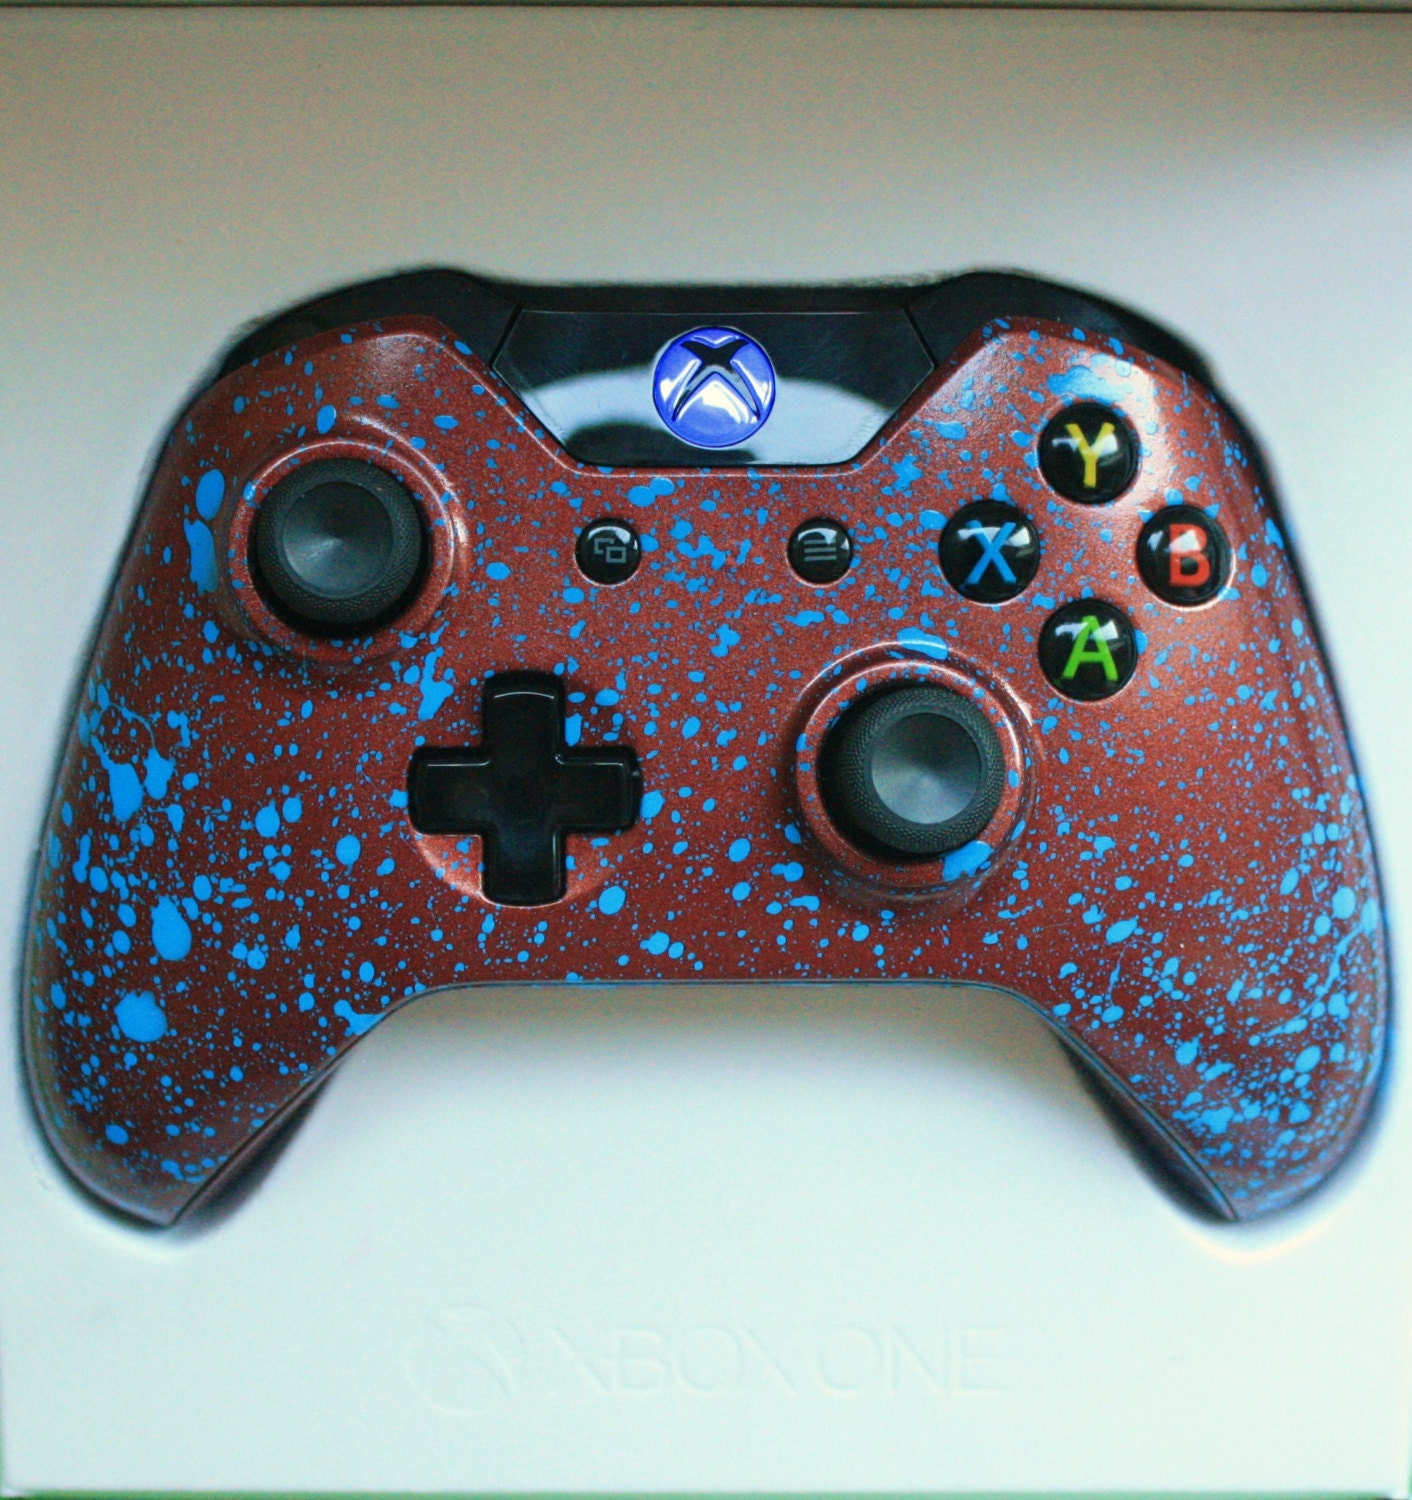 Fun Games For Xbox Original : Brand new xbox one controller led blue mod custom